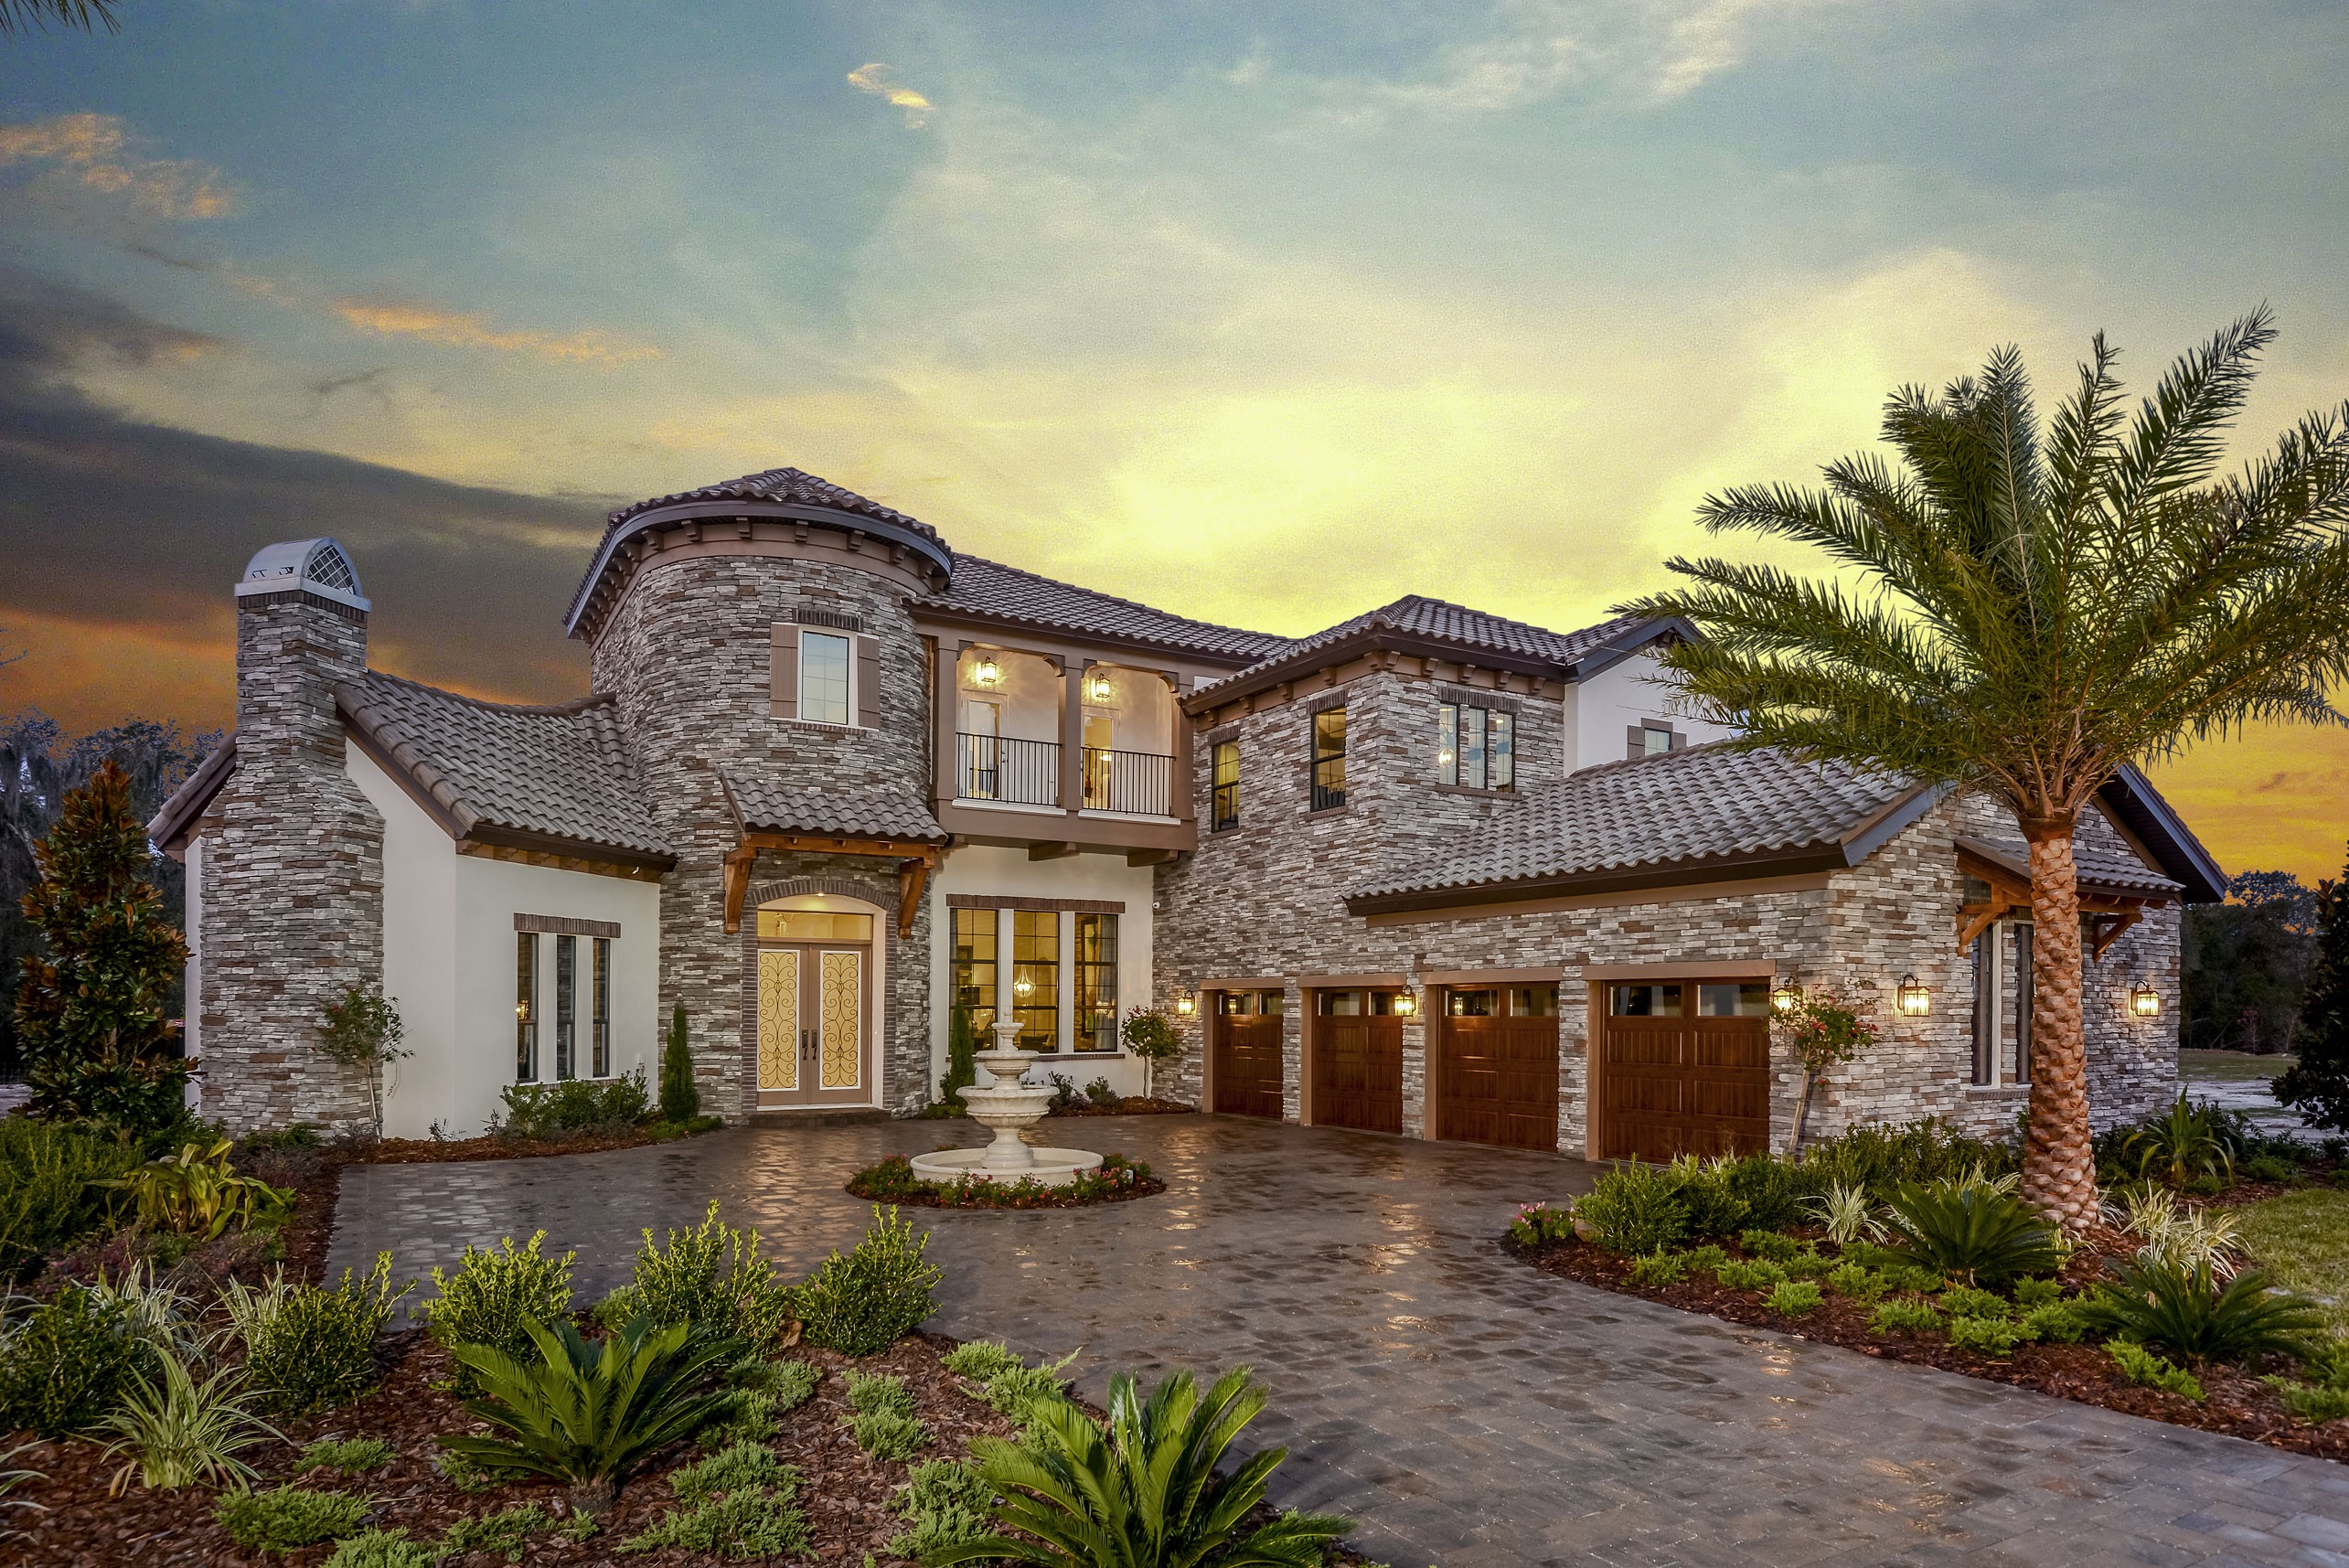 And Classy Mediterranean House Designs Home Design Lover: 30 Classy Mediterranean House Exterior Design Ideas #18142